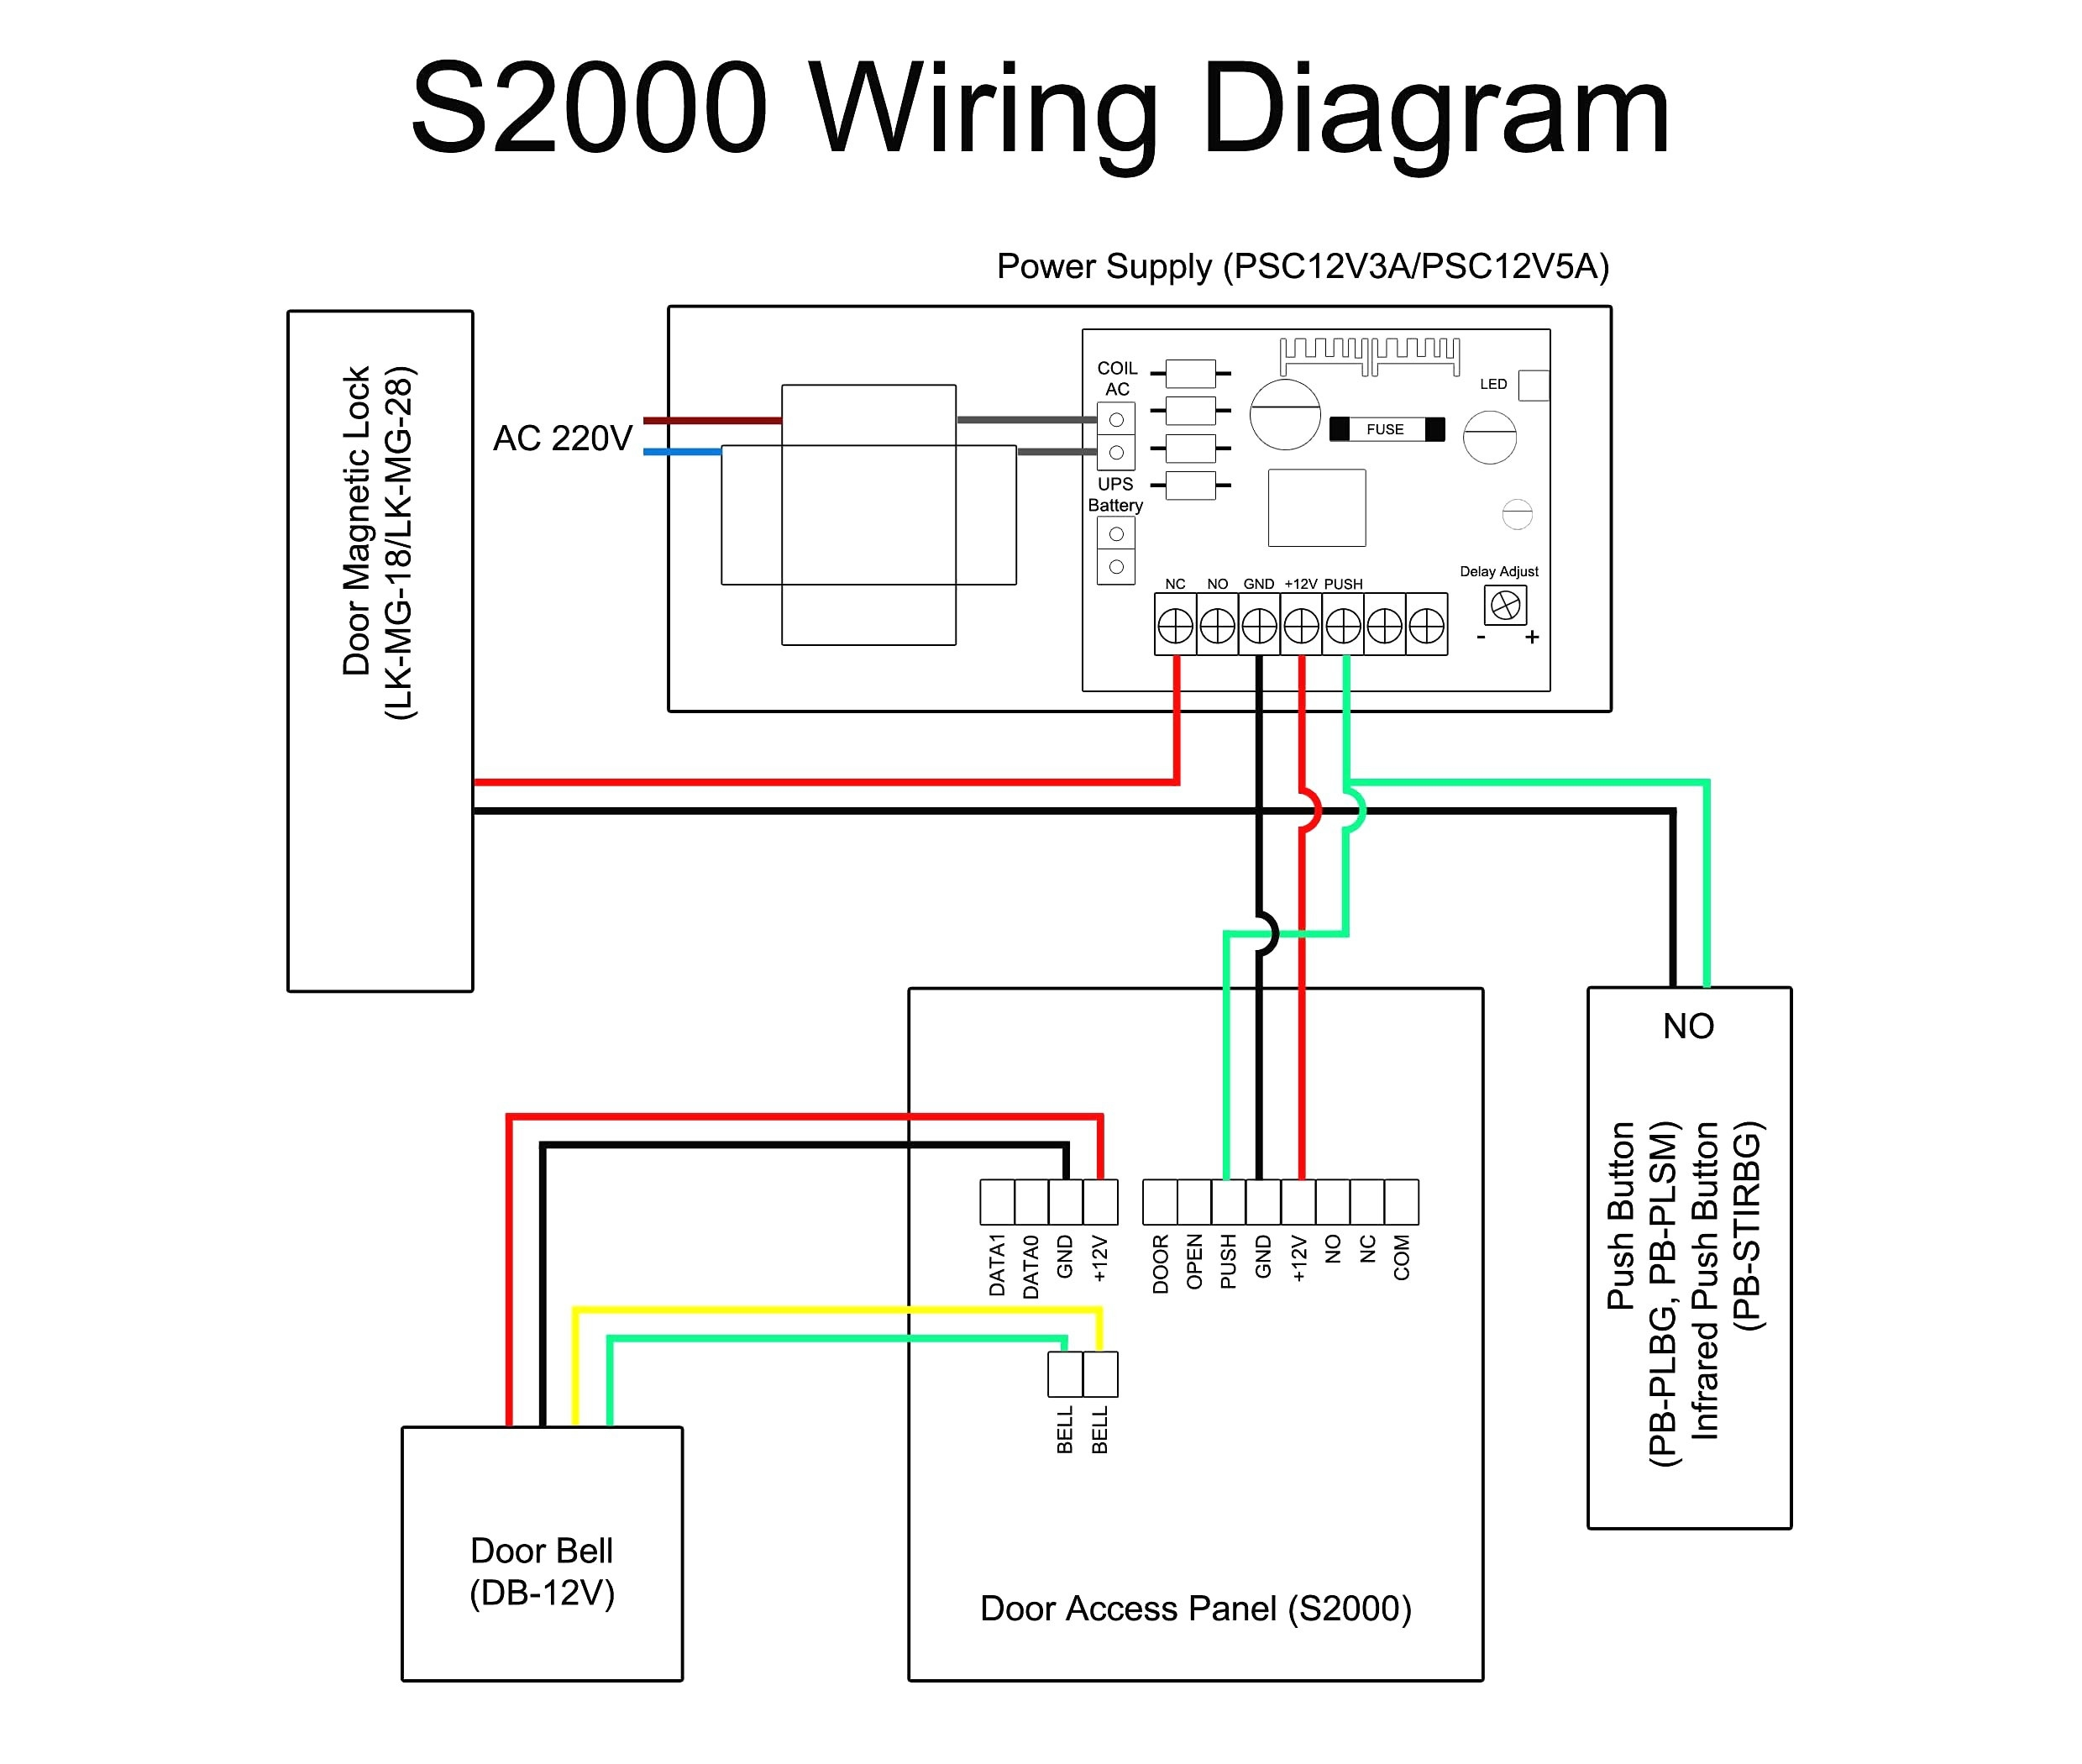 wire diagram camera wire management & wiring diagram wiring diagram ip camera wire diagram camera #2